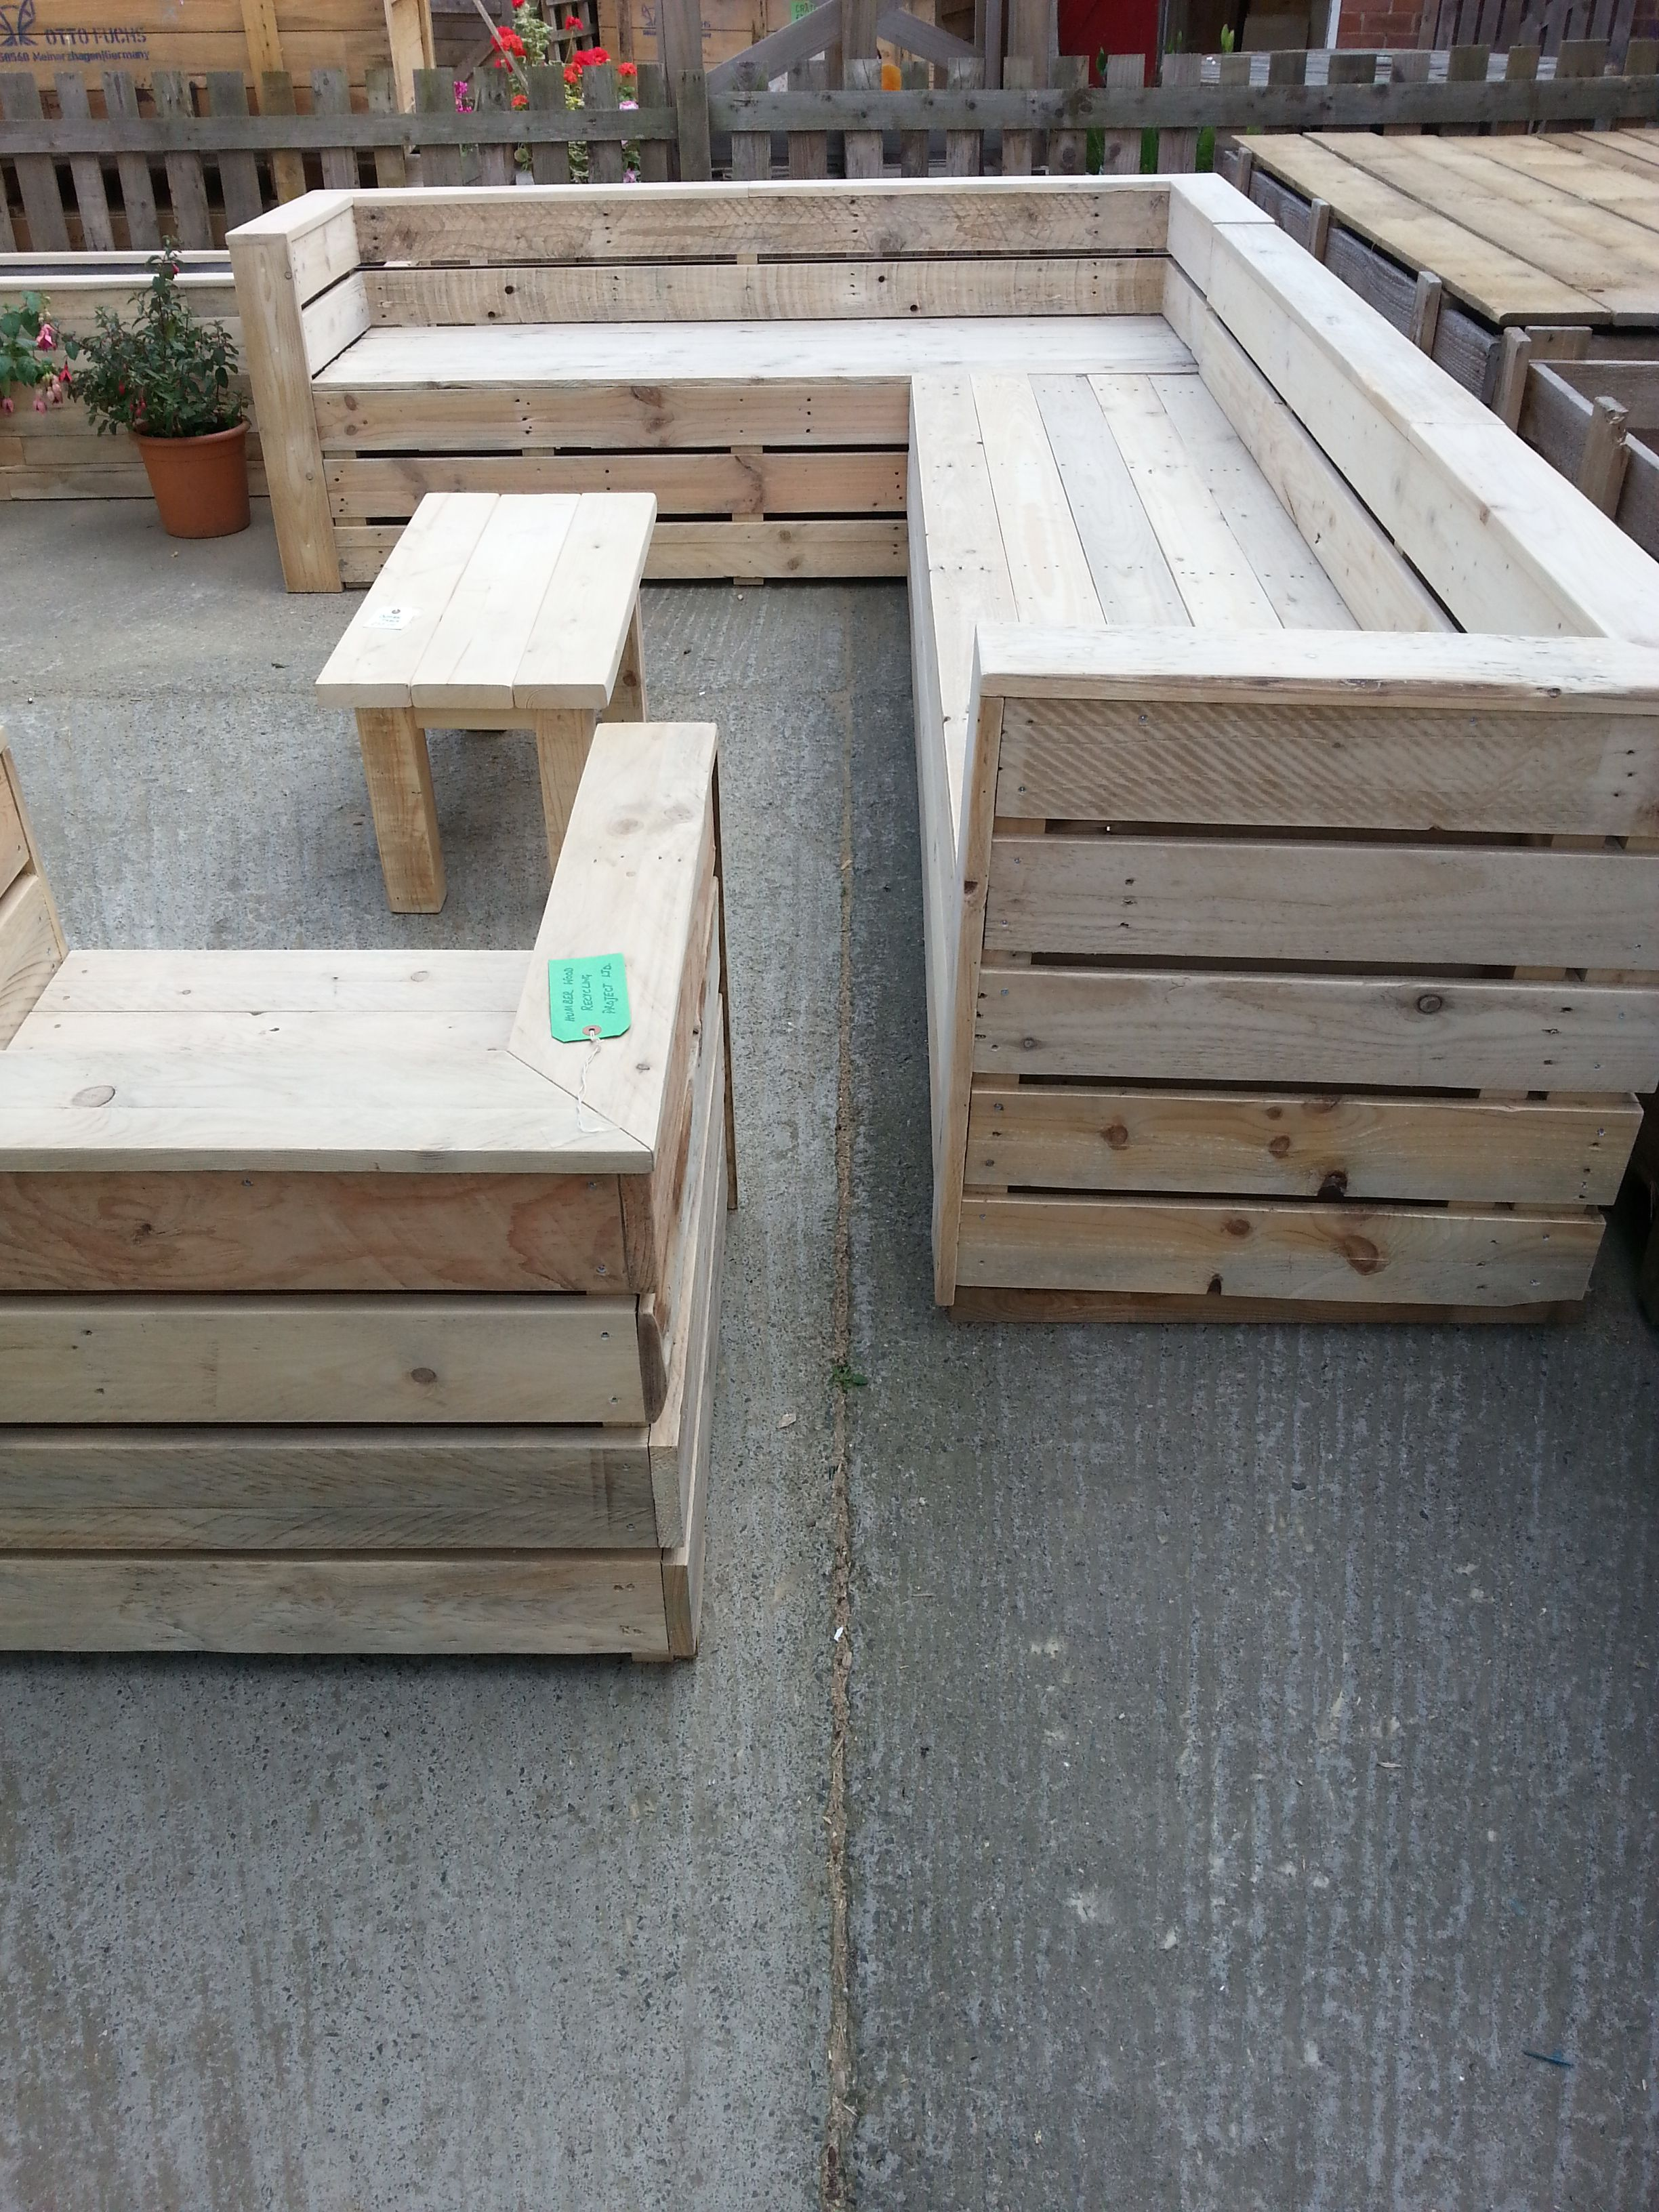 Suite of garden seating and low-level table constructed from reclaimed pallet wood